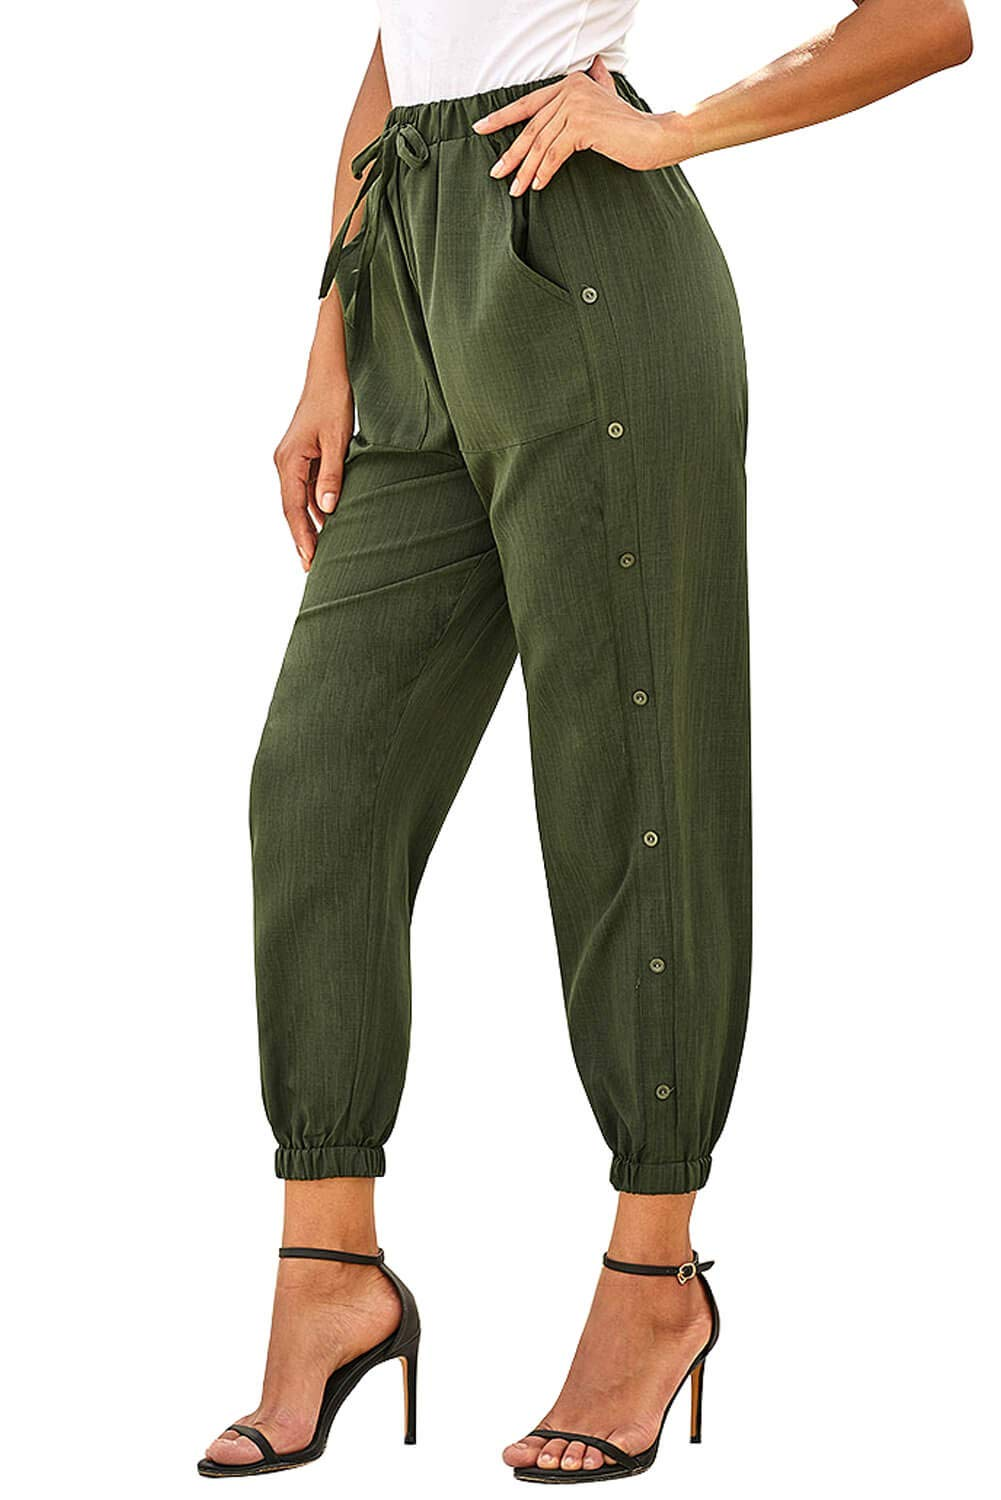 NEWFANGLE Women's Linen Casual Pants Drawstring Elastic Waist with Pockets Solid Comfy Loose Fit Trousers,Green,L